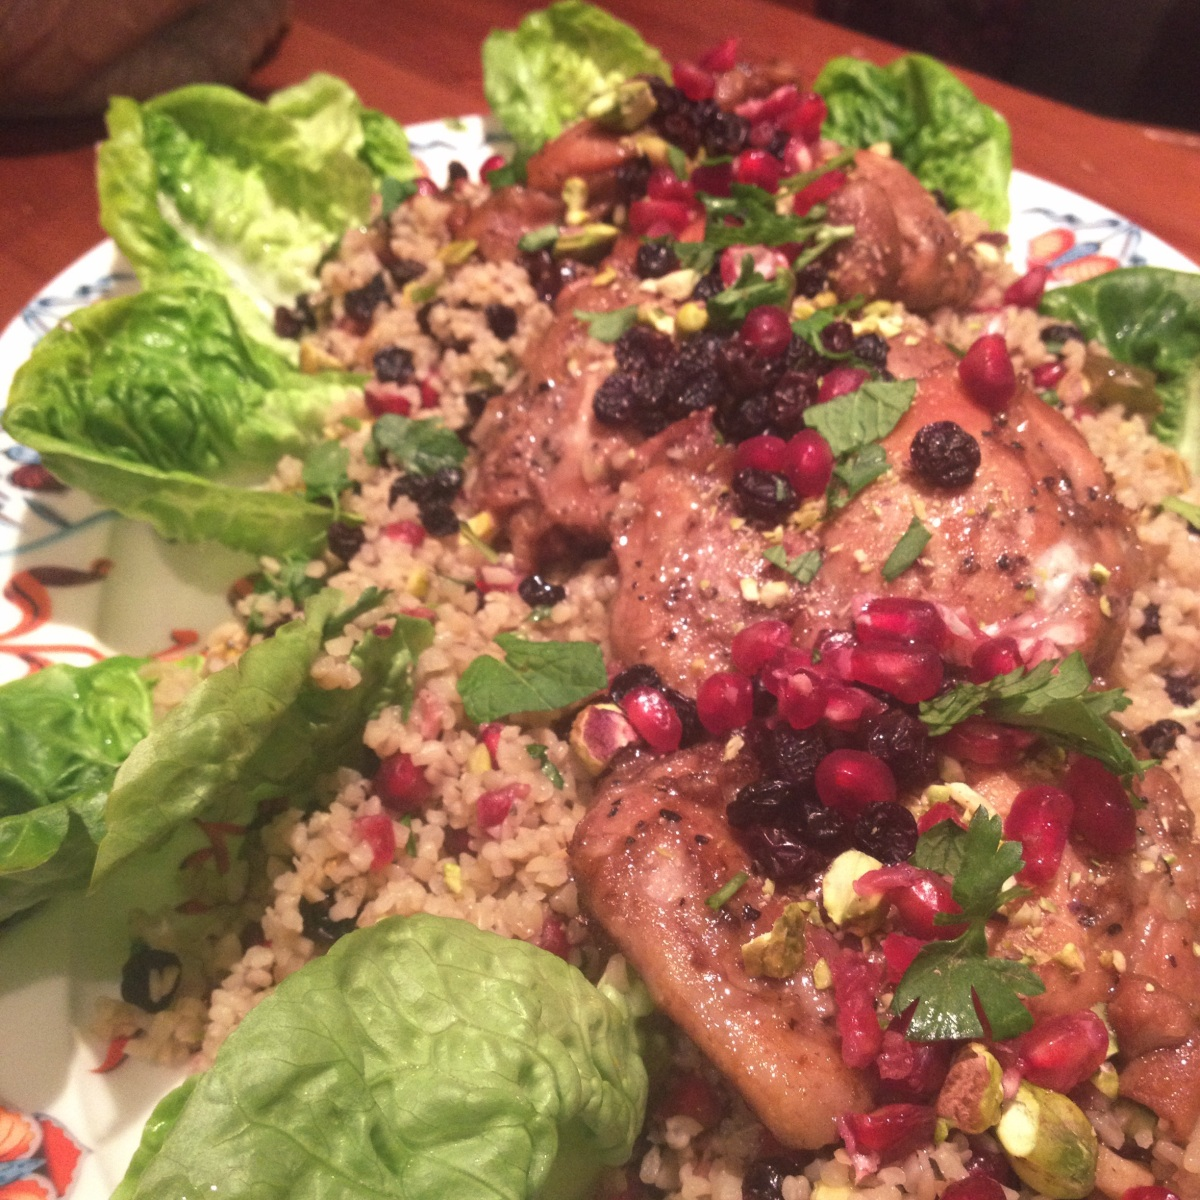 pomegranate molasses chicken with bulgar wheat salad emmarosetully